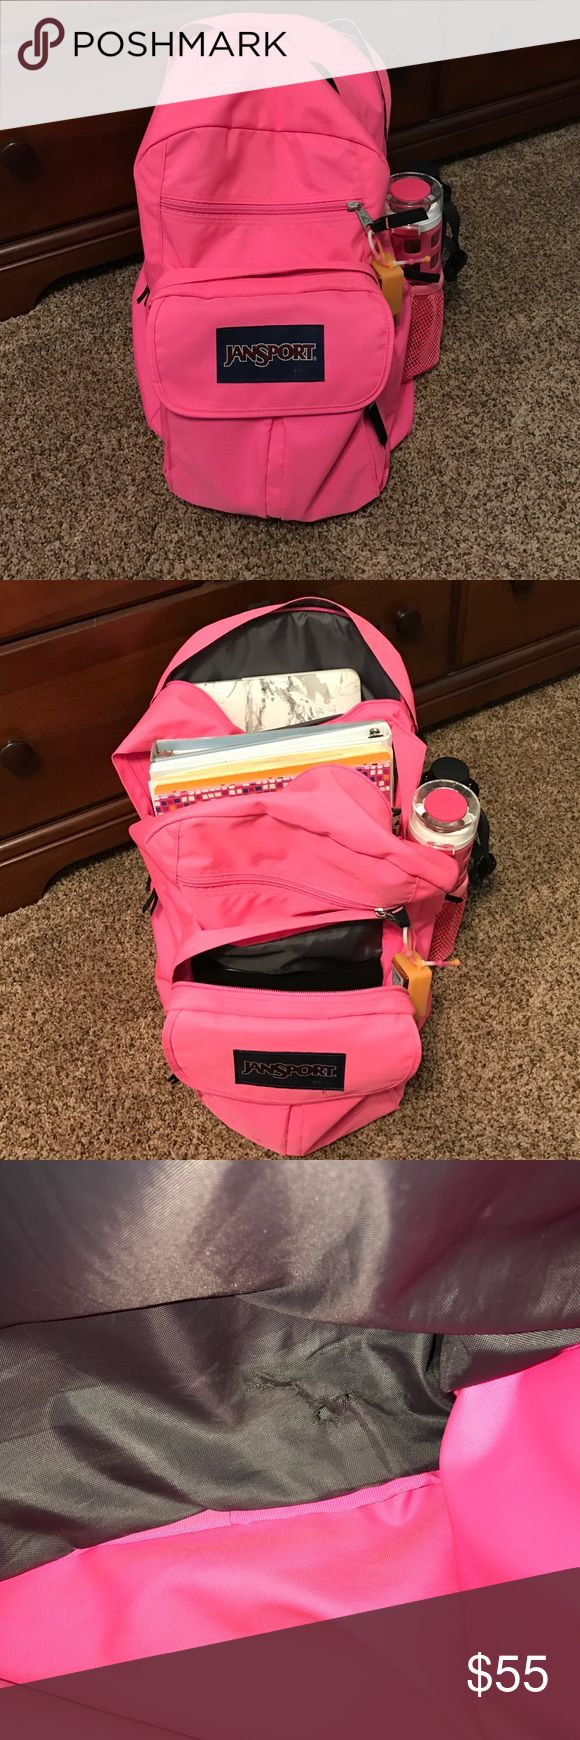 Jansport backpack Hot pink Jansport backpack. Used. In great condition. Only damage is on the inside shown in 3rd picture. Has room for a laptop, plenty of books, and a tablet. Jansport Bags Backpacks